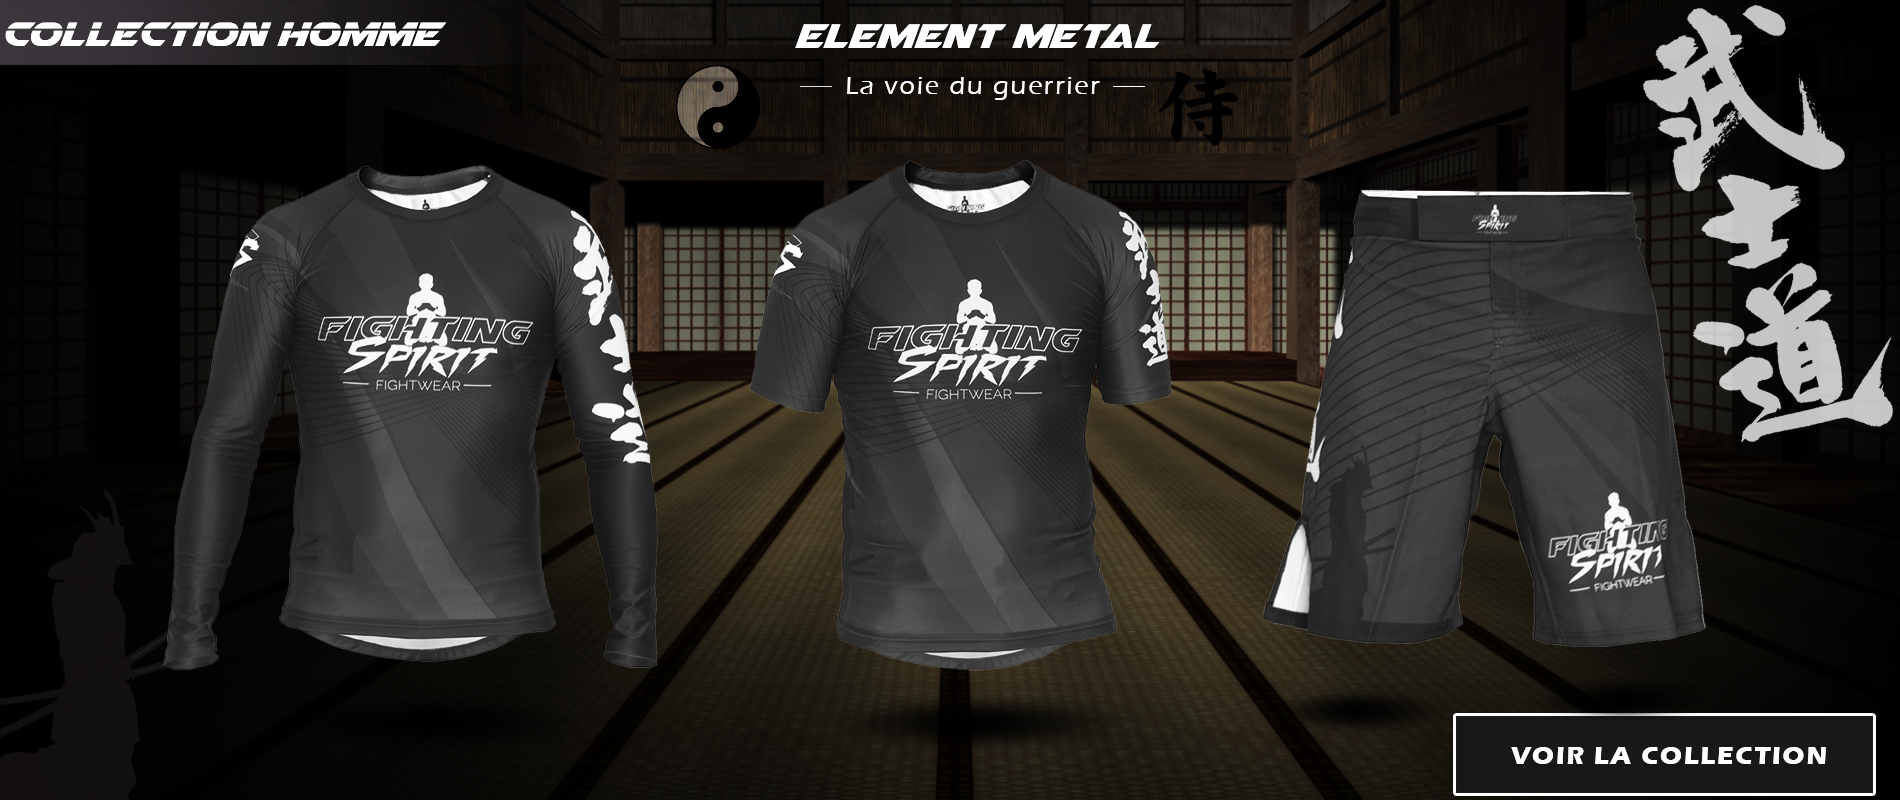 ELEMENT métal Homme - FIGHTING SPIRIT